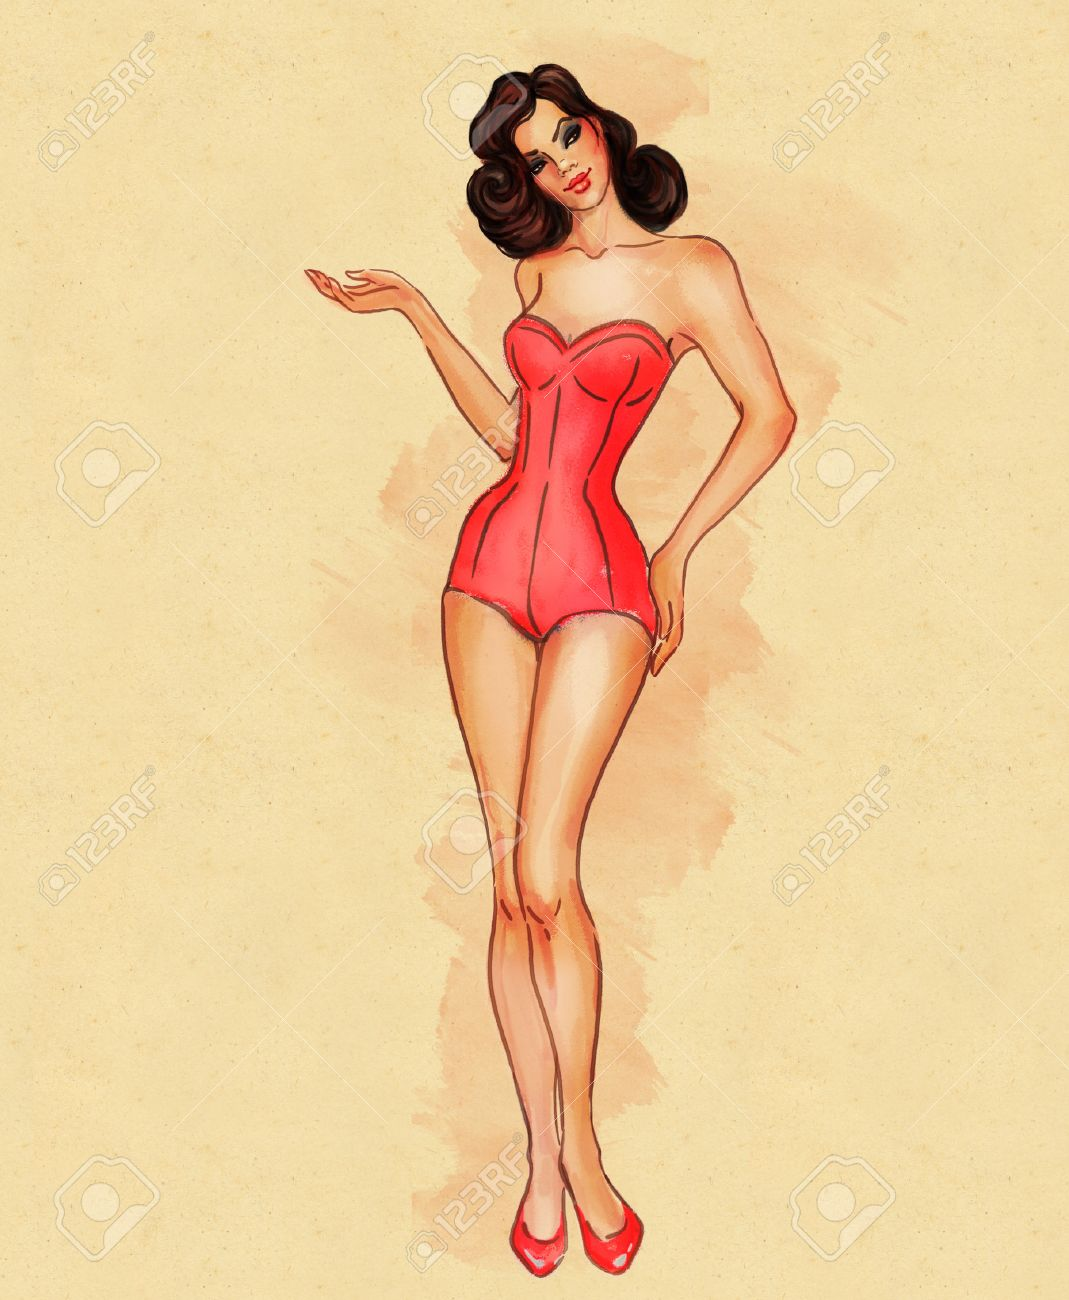 92441dafbf7aa Pretty retro sexy pinup girl in swimsuit displaying something Illustration  Stock Illustration - 24570102